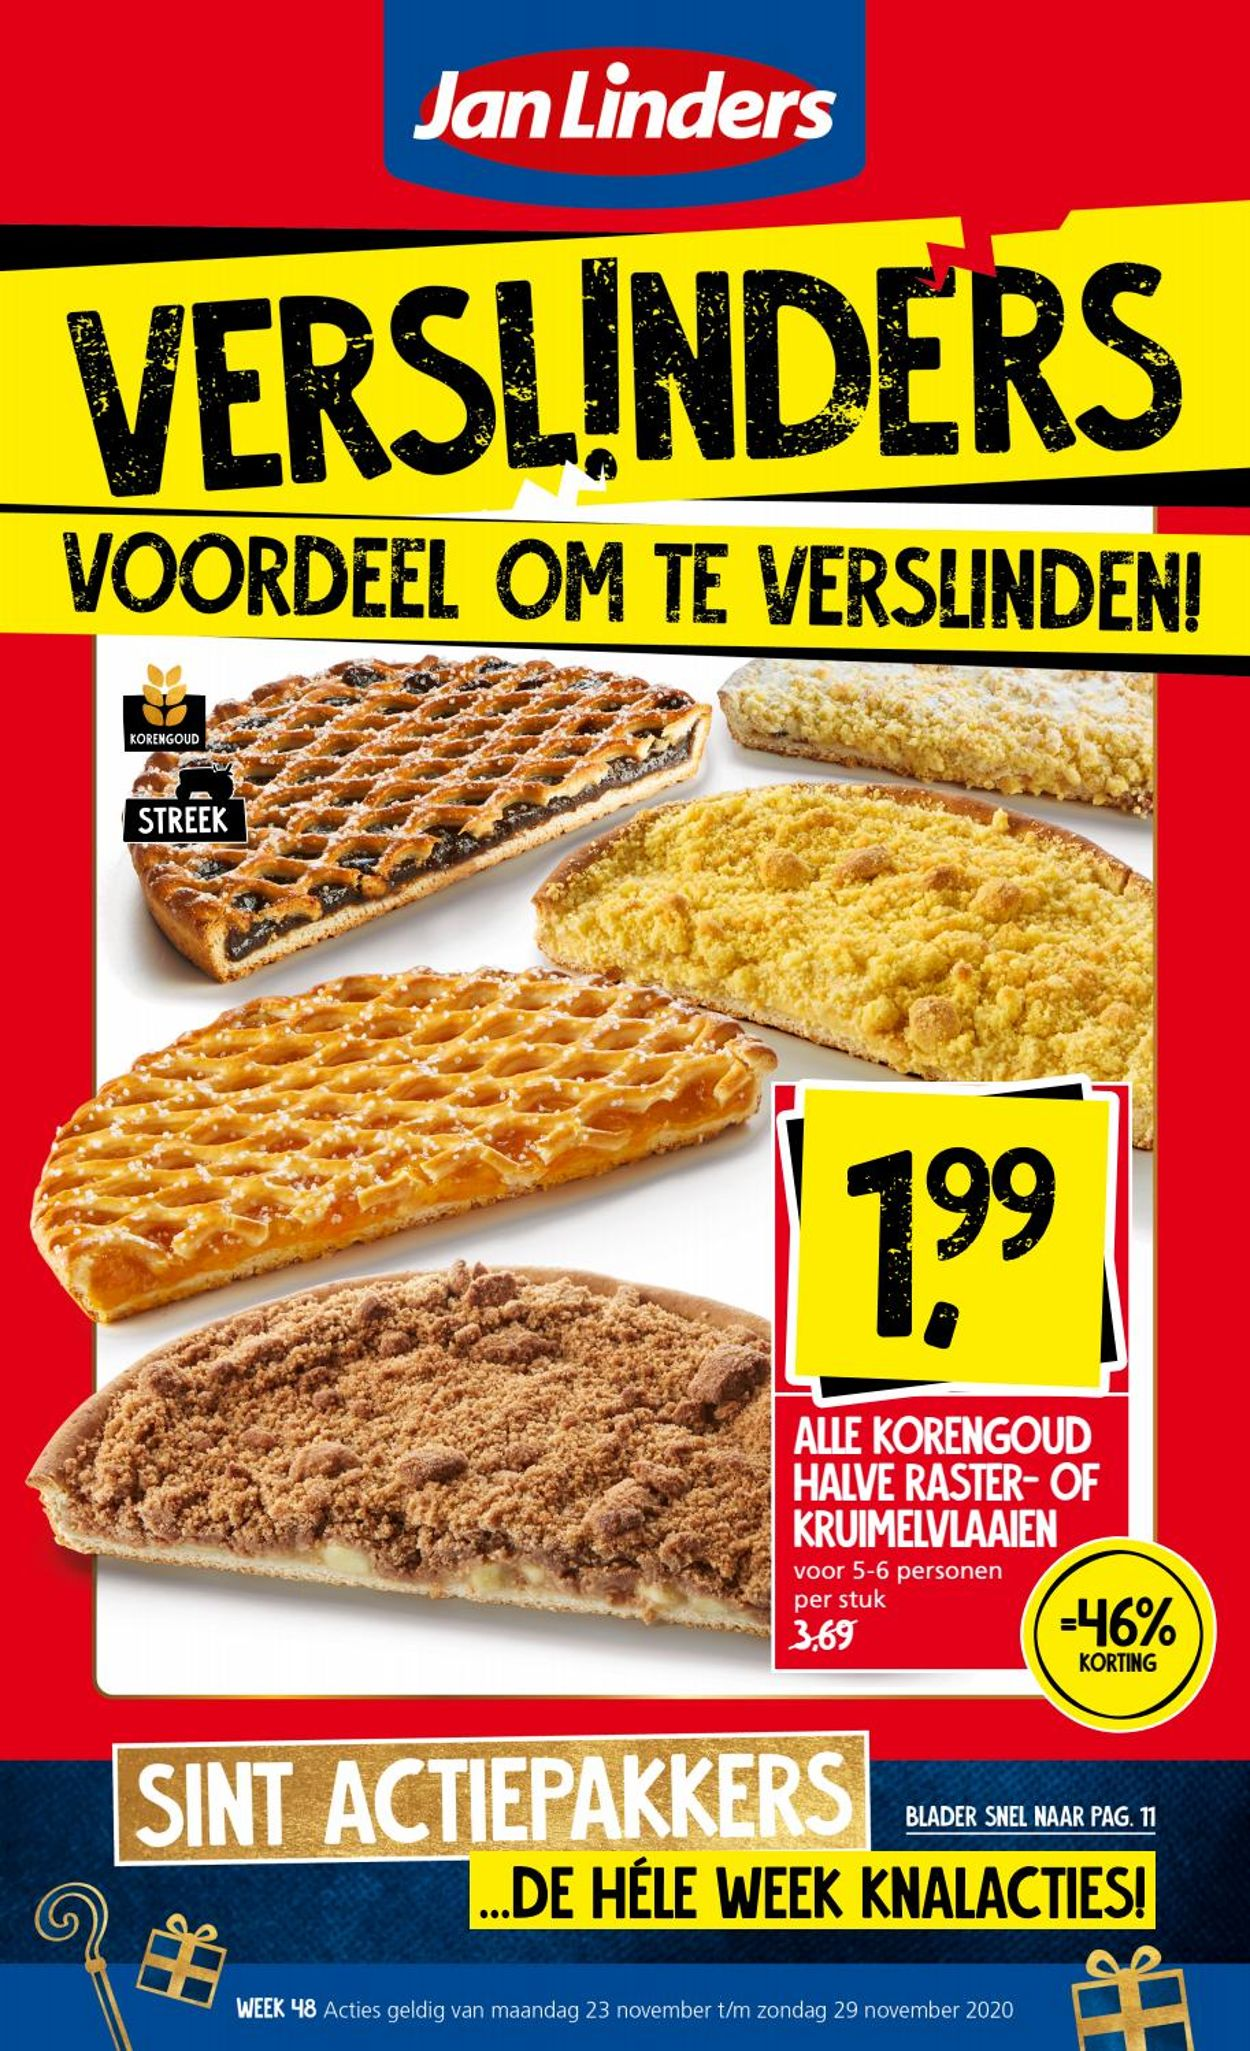 Catalogus van Jan Linders Black Friday 2020 van 23.11.2020